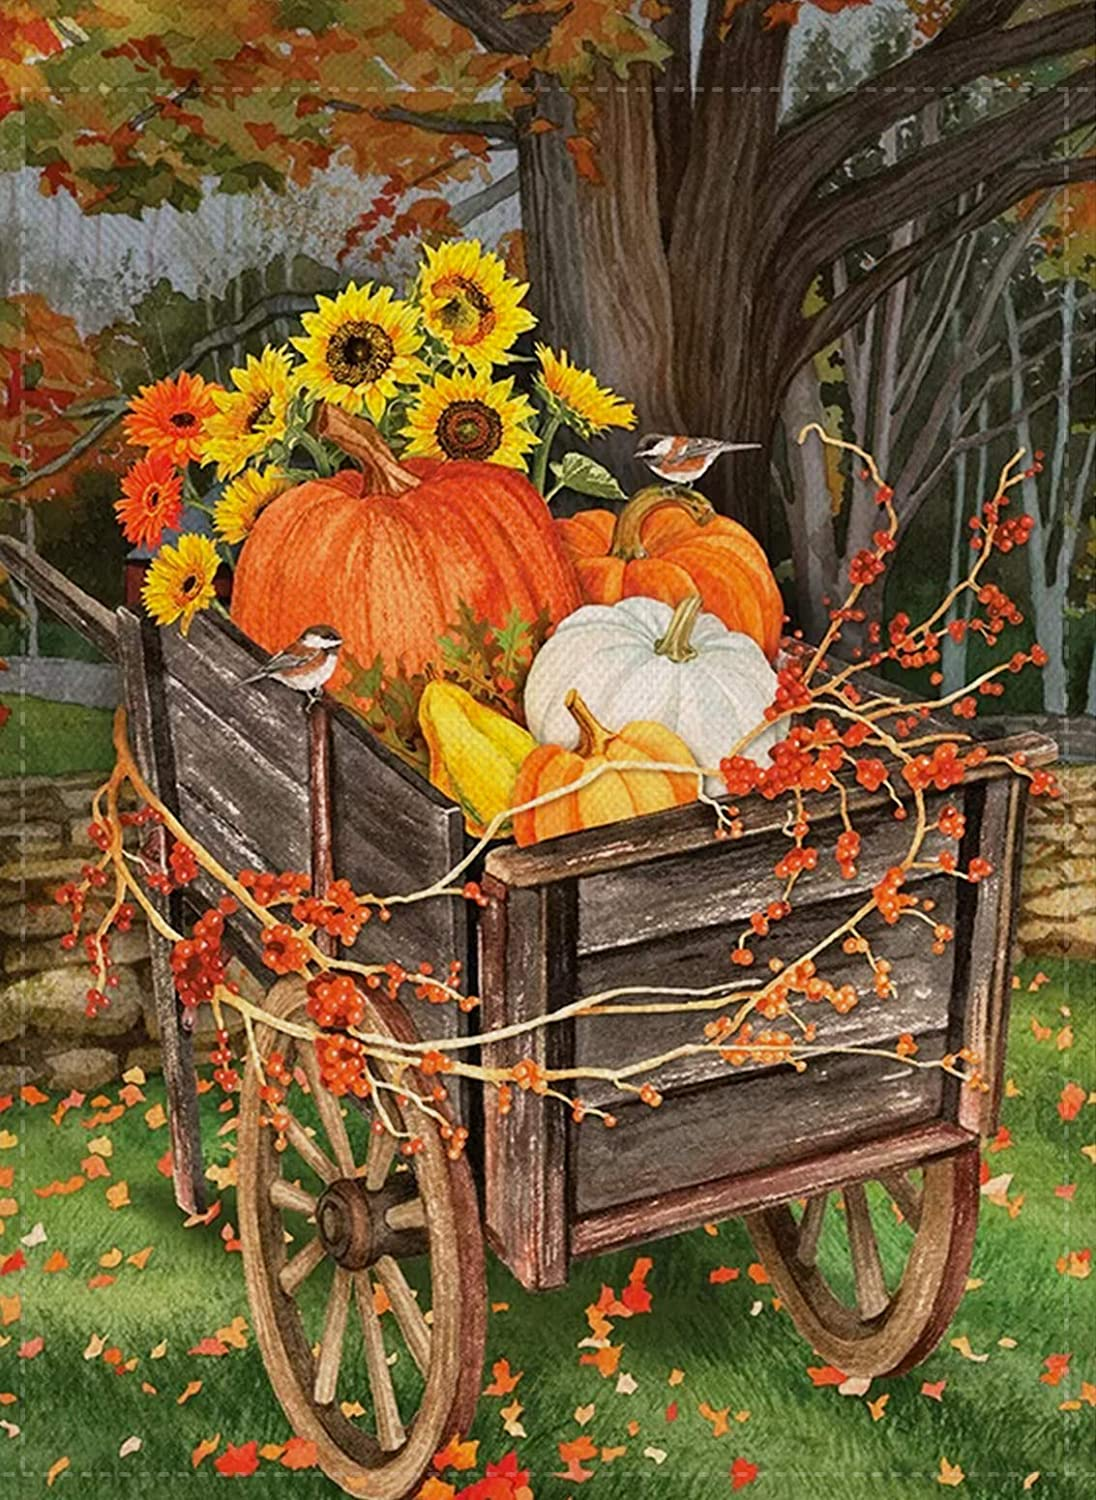 Covido Welcome Fall Garden Flag Pumpkins Cart, Home Decorative House Yard Outside Small Flag Sunflower Birds Maple Decor, Autumn Harvest Outdoor Decorations Seasonal Decor Flag Double Sided 12 x 18